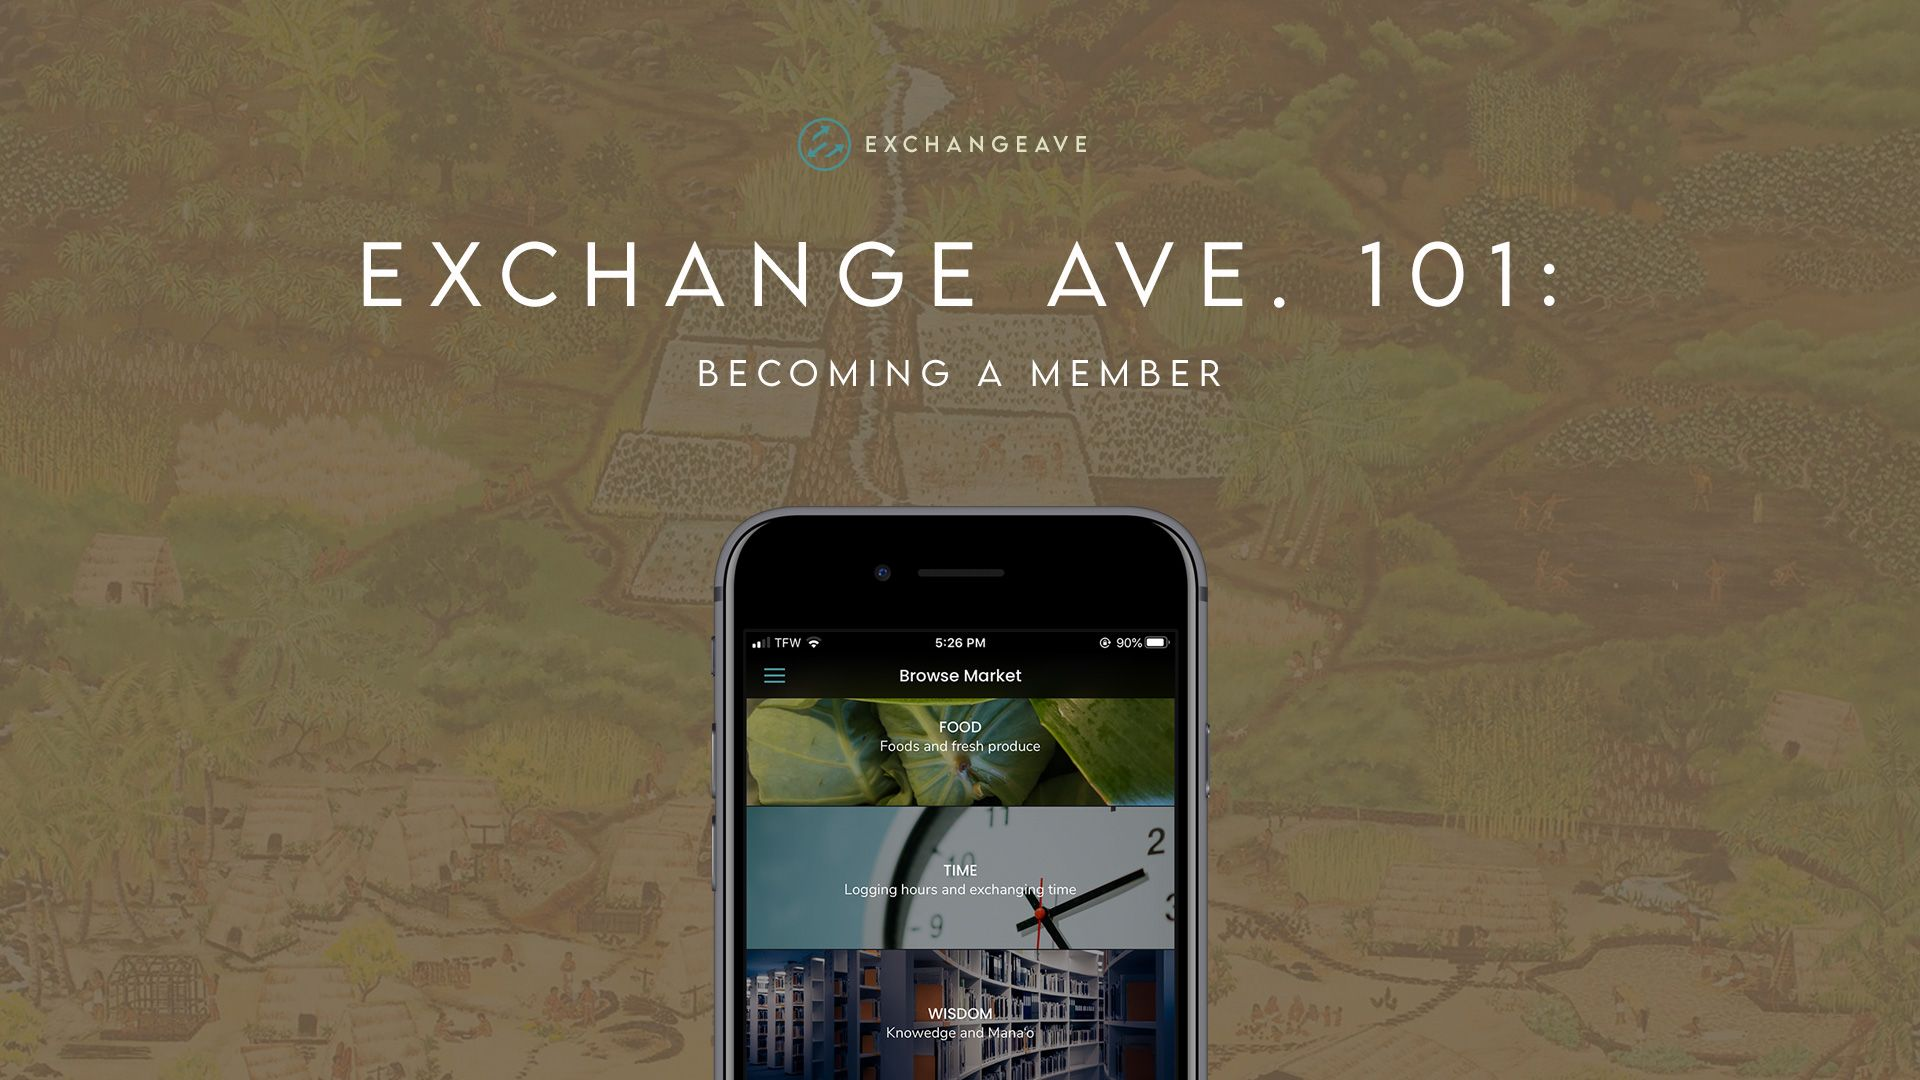 Exchange Ave. 101: Becoming a Member